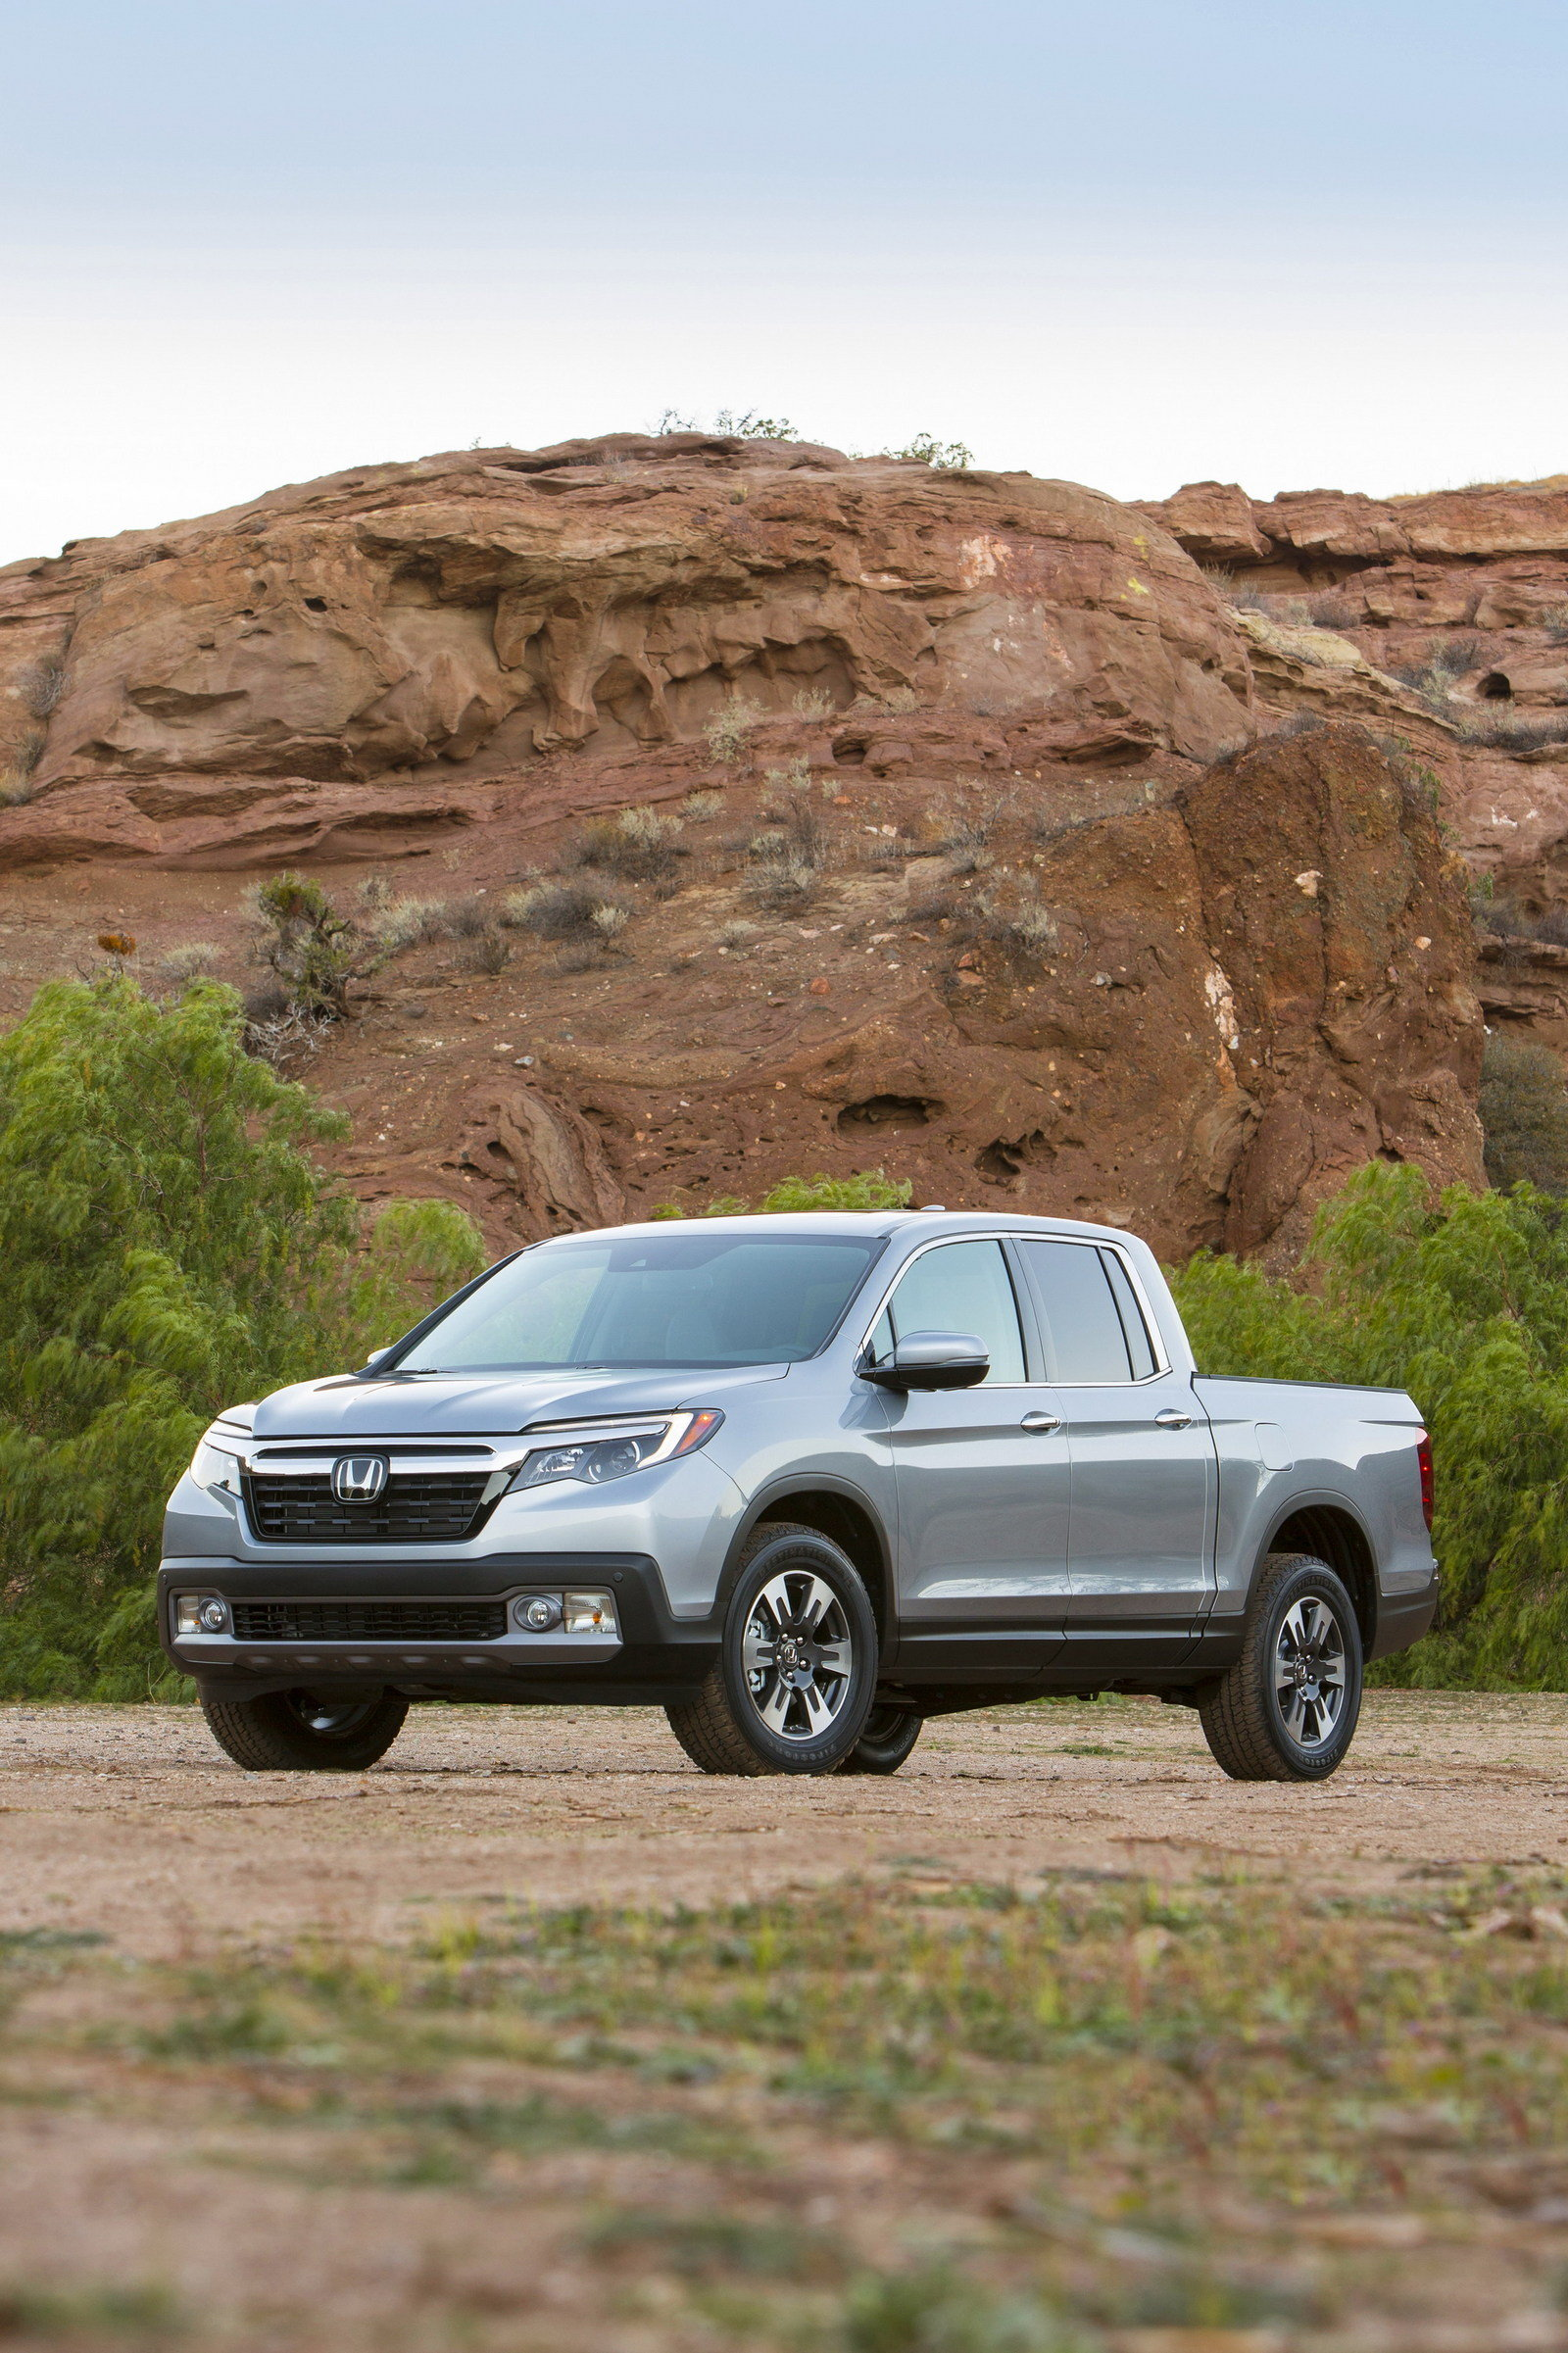 2016 honda ridgeline picture 661613 truck review top speed. Black Bedroom Furniture Sets. Home Design Ideas